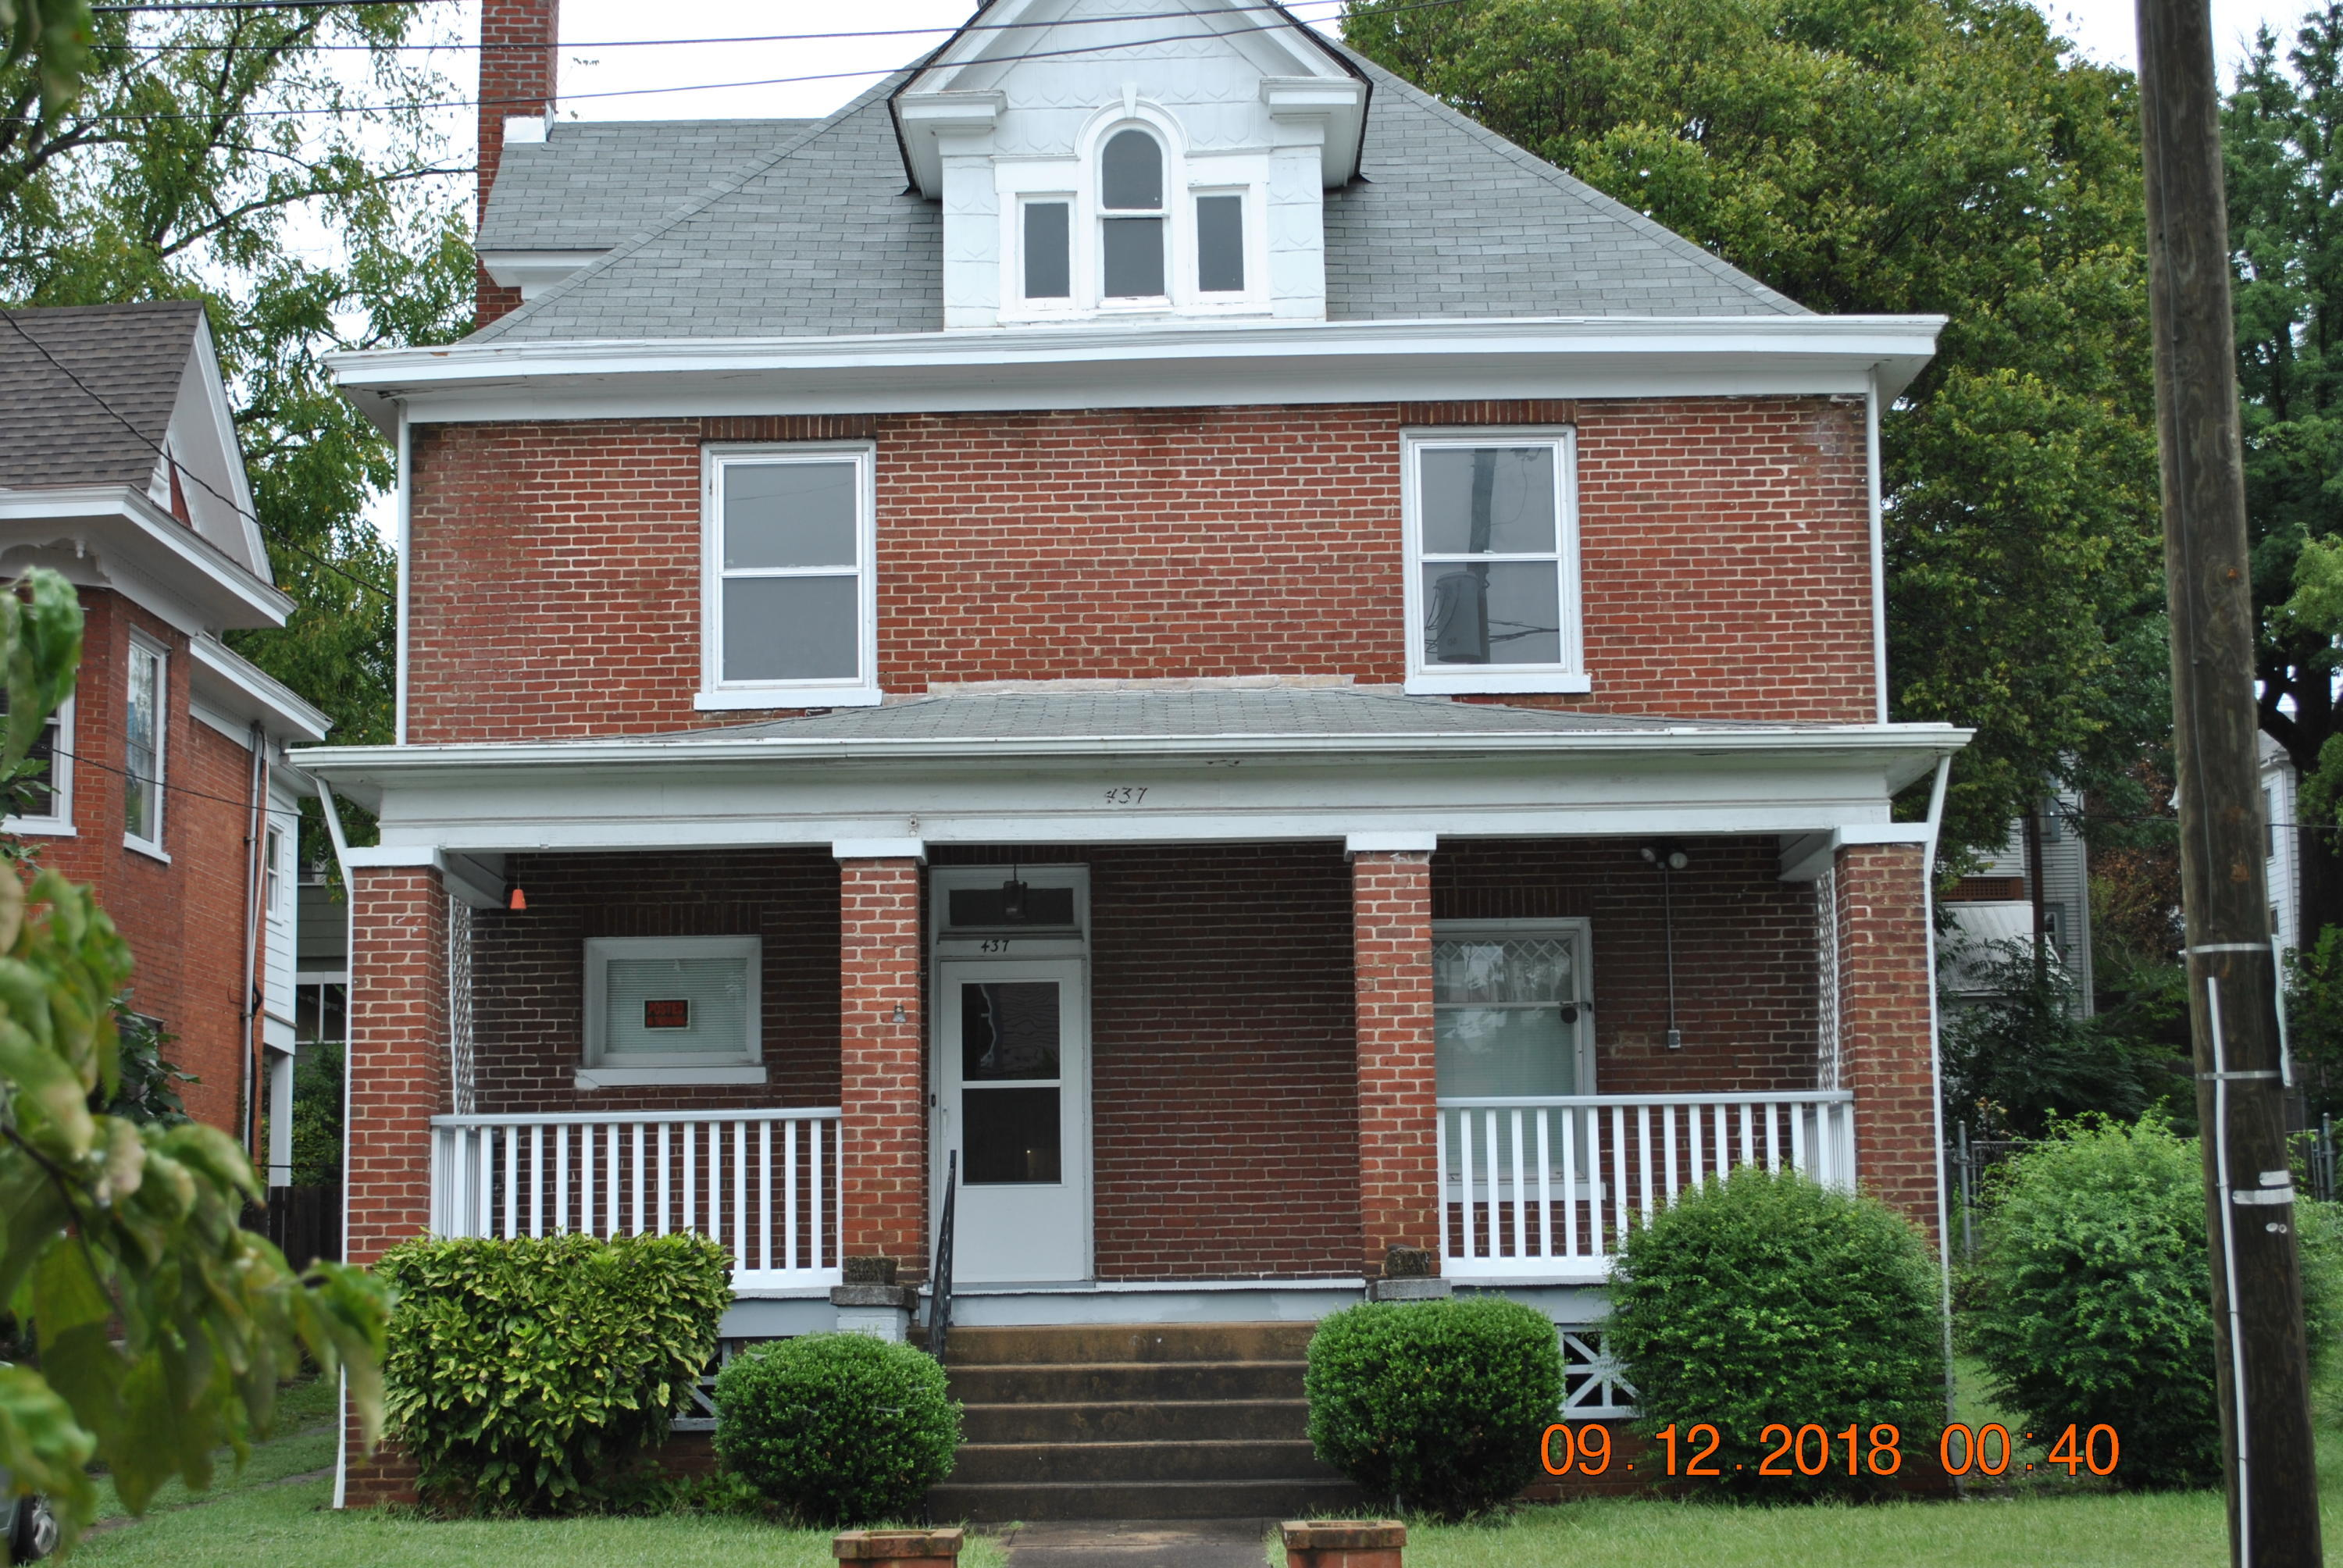 Garage For Rent Roanoke Va 3 Bed 2 Bath Home In Roanoke For 215 000